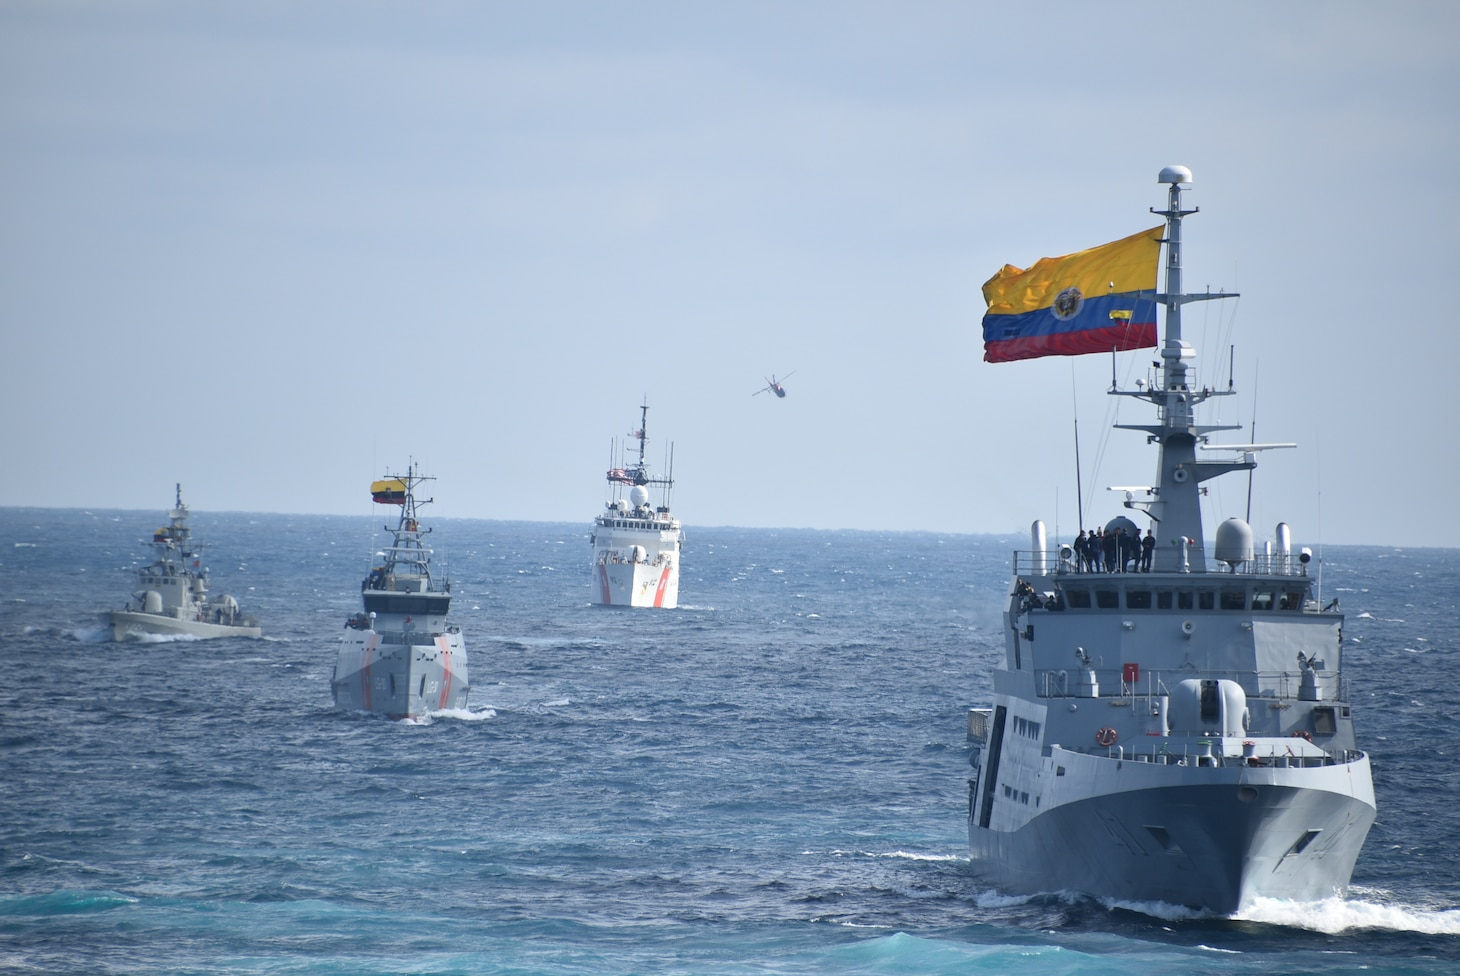 Naval ships from Ecuador, Colombia, Peru and the United States transit in formation during a training exercise for UNITAS LXI in Ecuador.